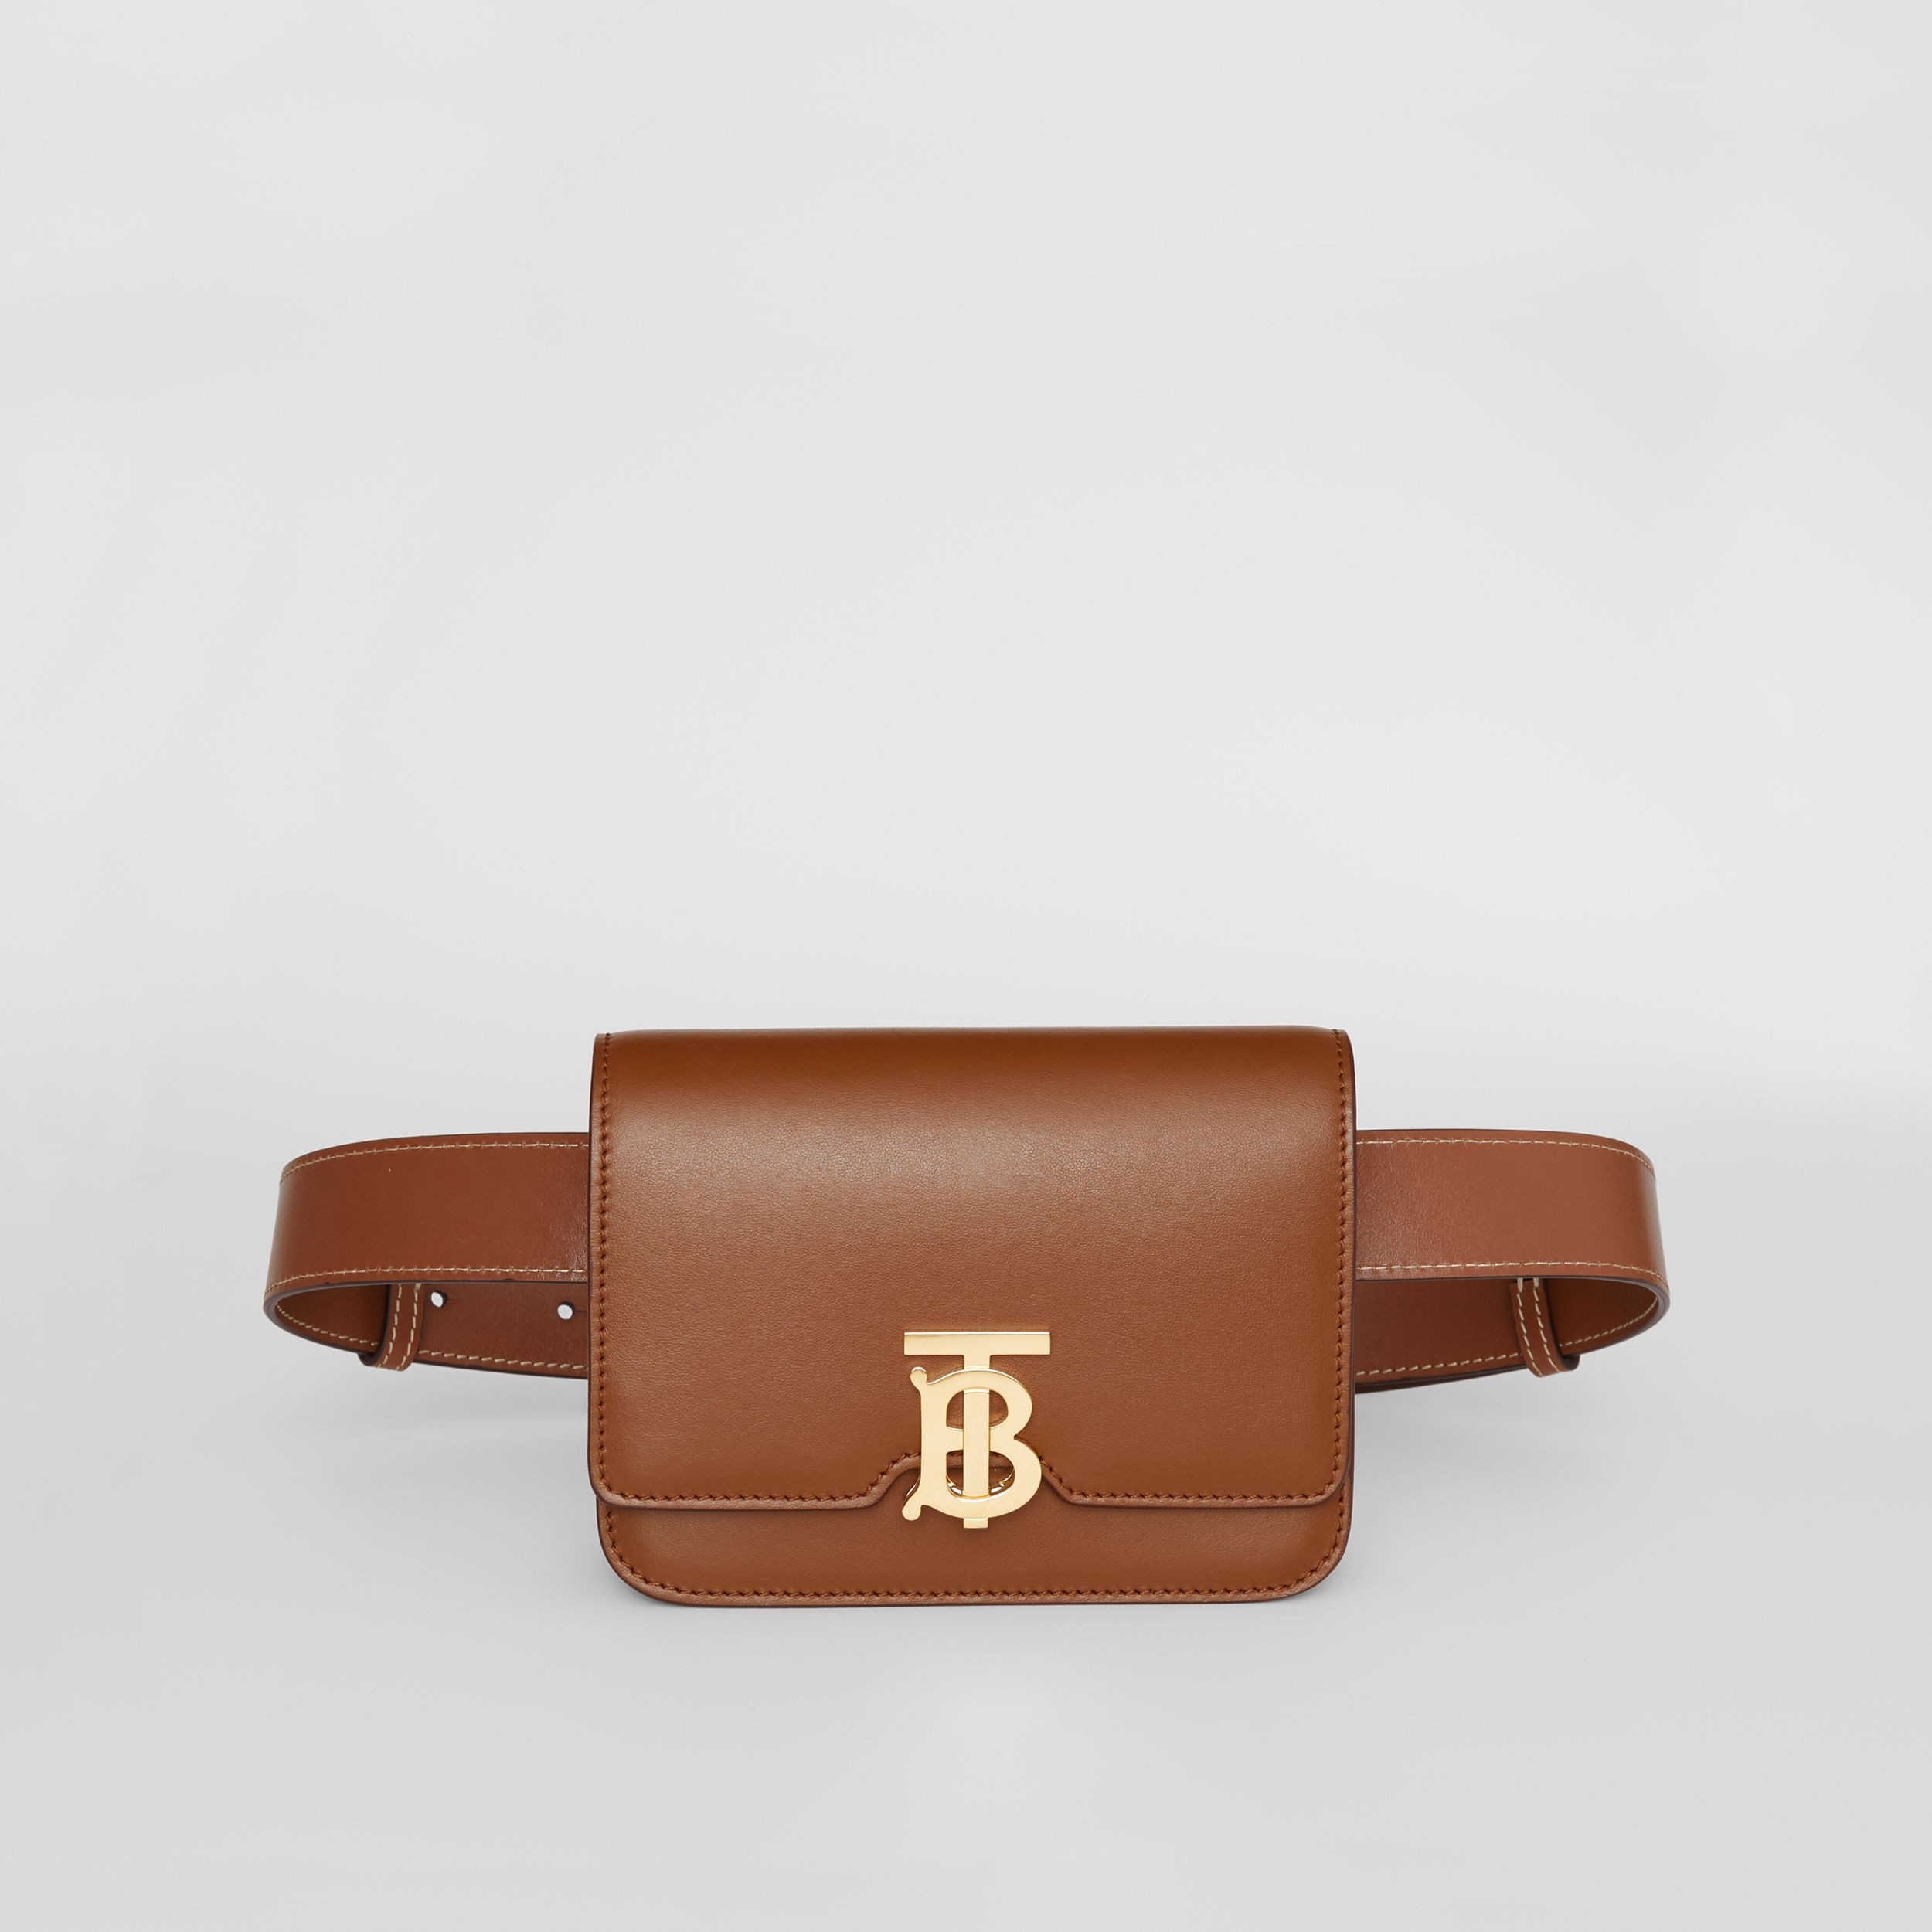 Belted Leather TB Bag in Malt Brown - Women | Burberry - 1